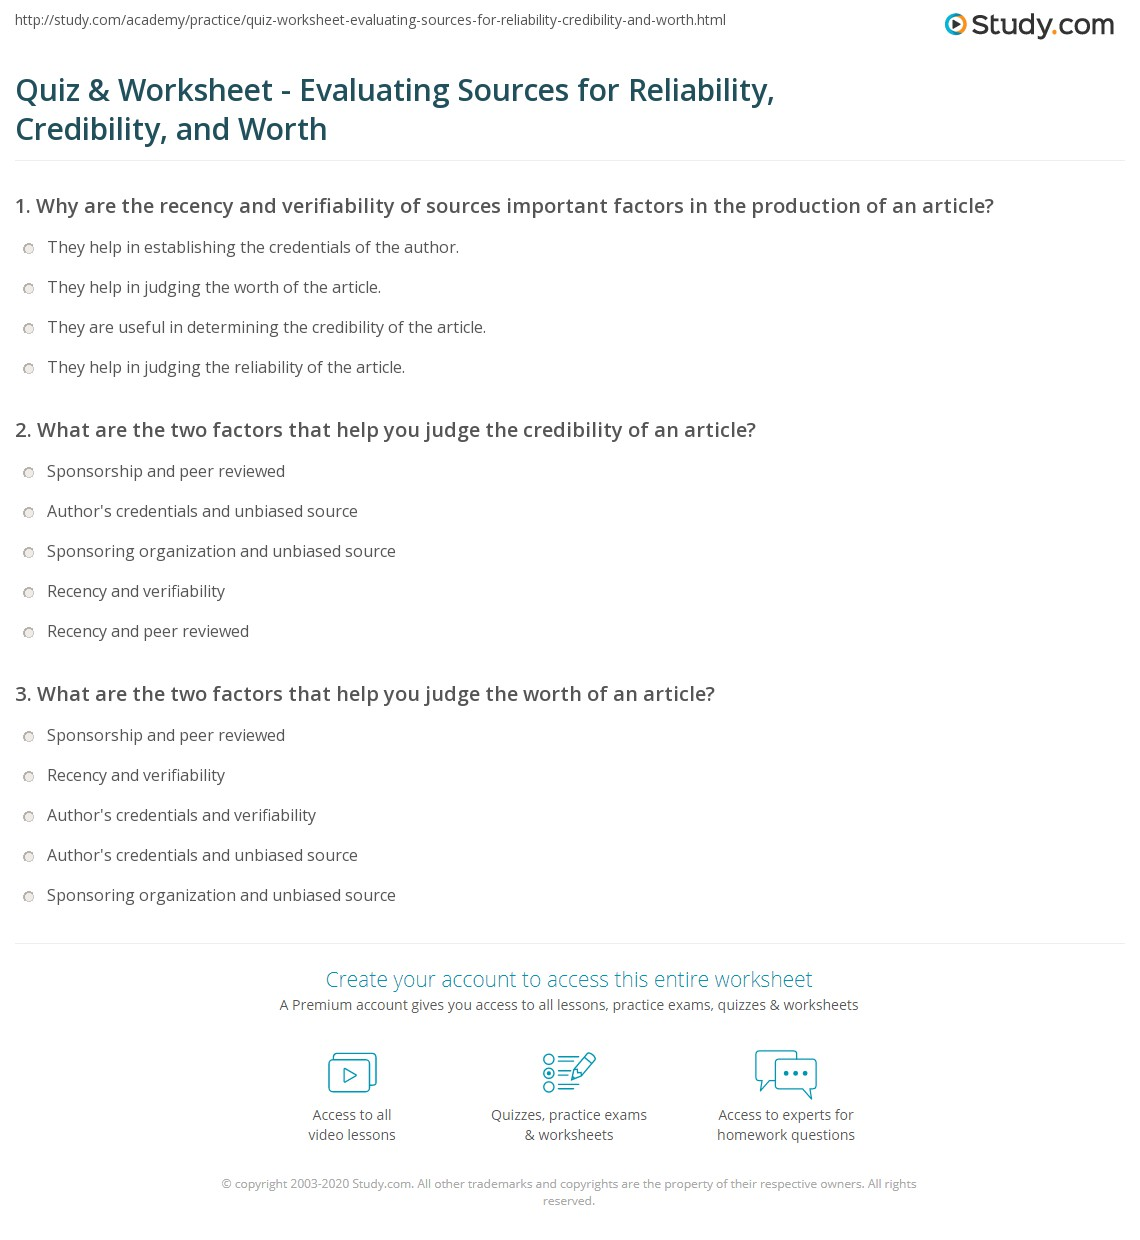 quiz worksheet evaluating sources for reliability credibility and worth. Black Bedroom Furniture Sets. Home Design Ideas